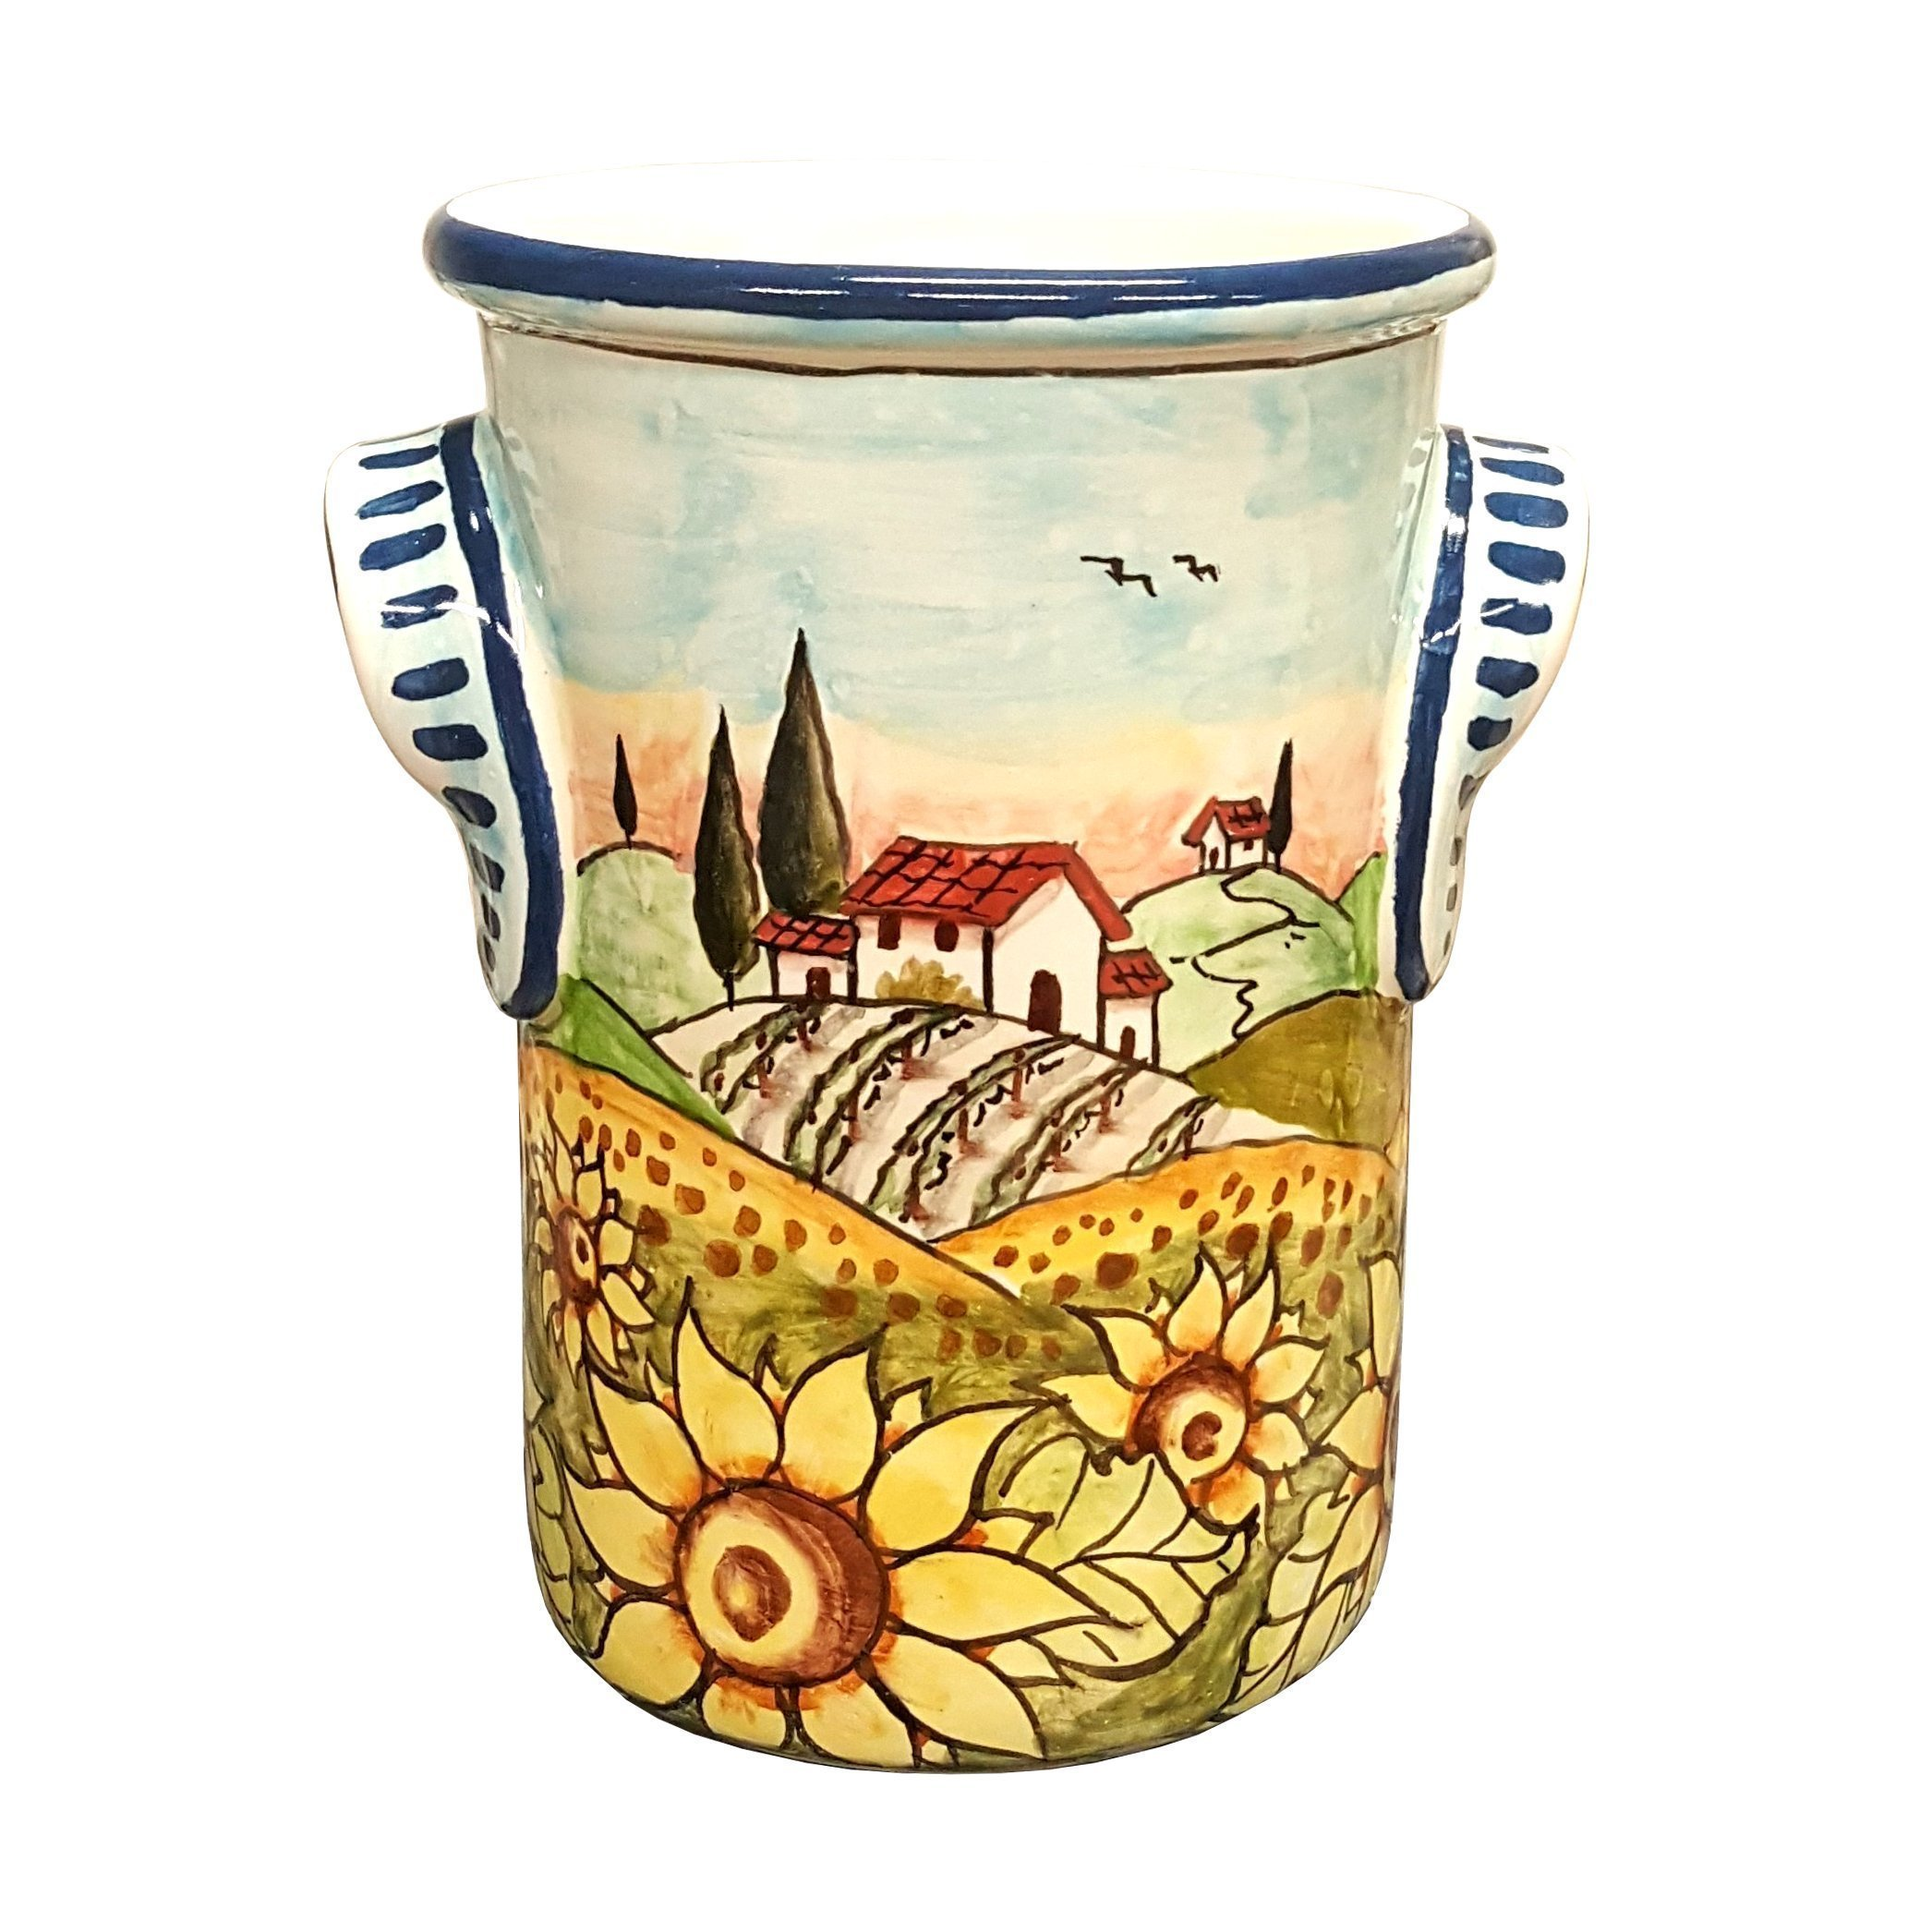 CERAMICHE D'ARTE PARRINI- Italian Ceramic Utensil Holder Vessel Hand Painted Made in ITALY Decorated Landscape Sunflowers Tuscan Art Pottery by CERAMICHE D'ARTE PARRINI since 1979